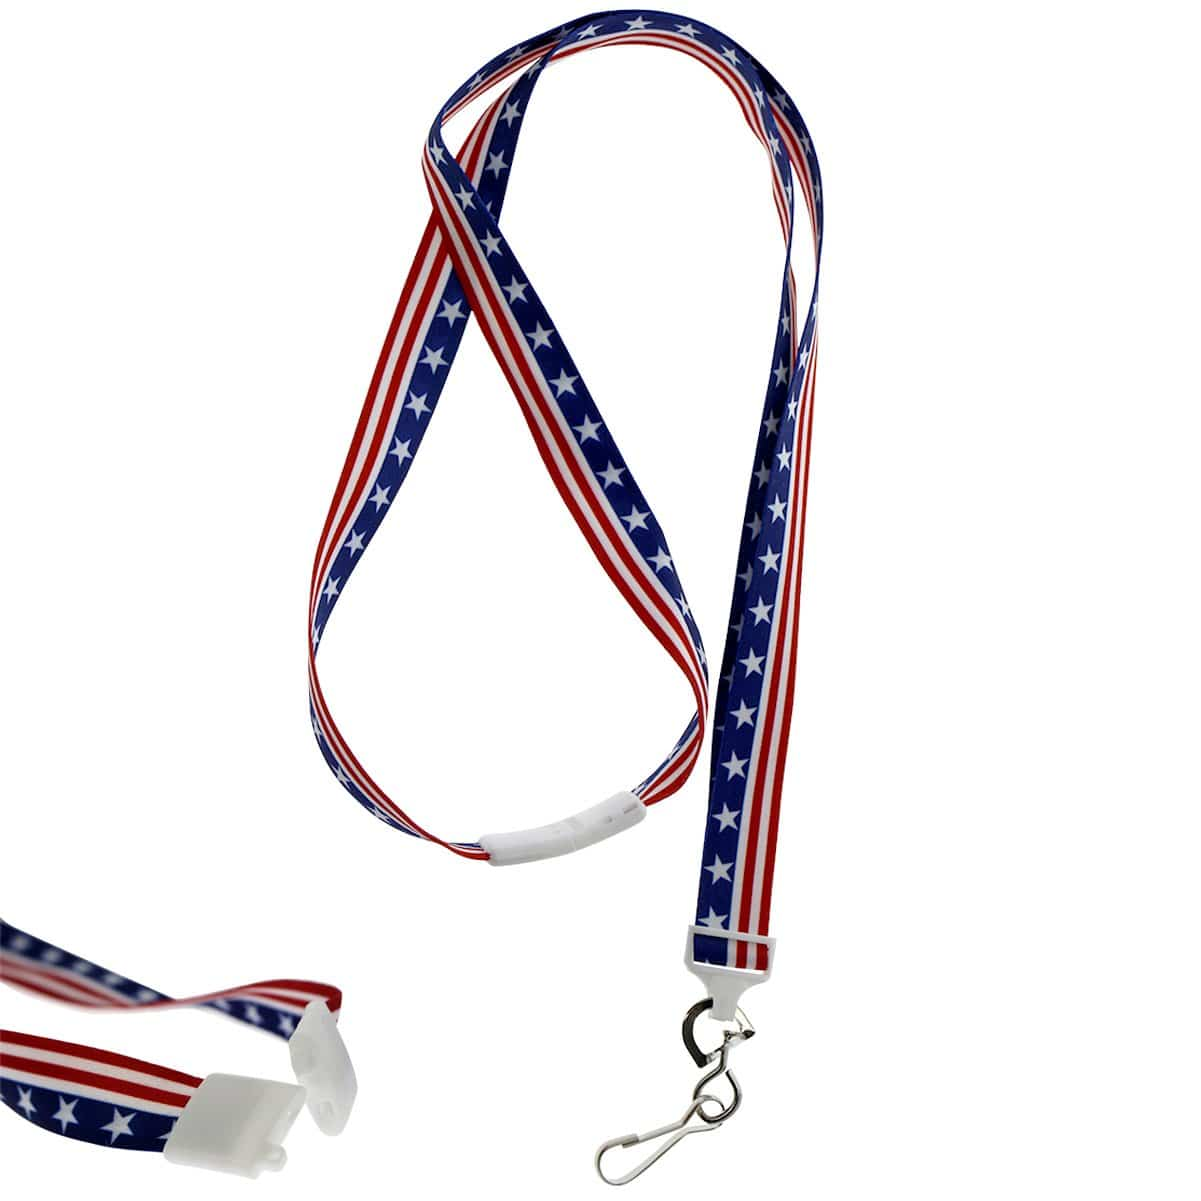 American Flag Breakaway Lanyard with Swivel Hook (P/N 2138-5081)